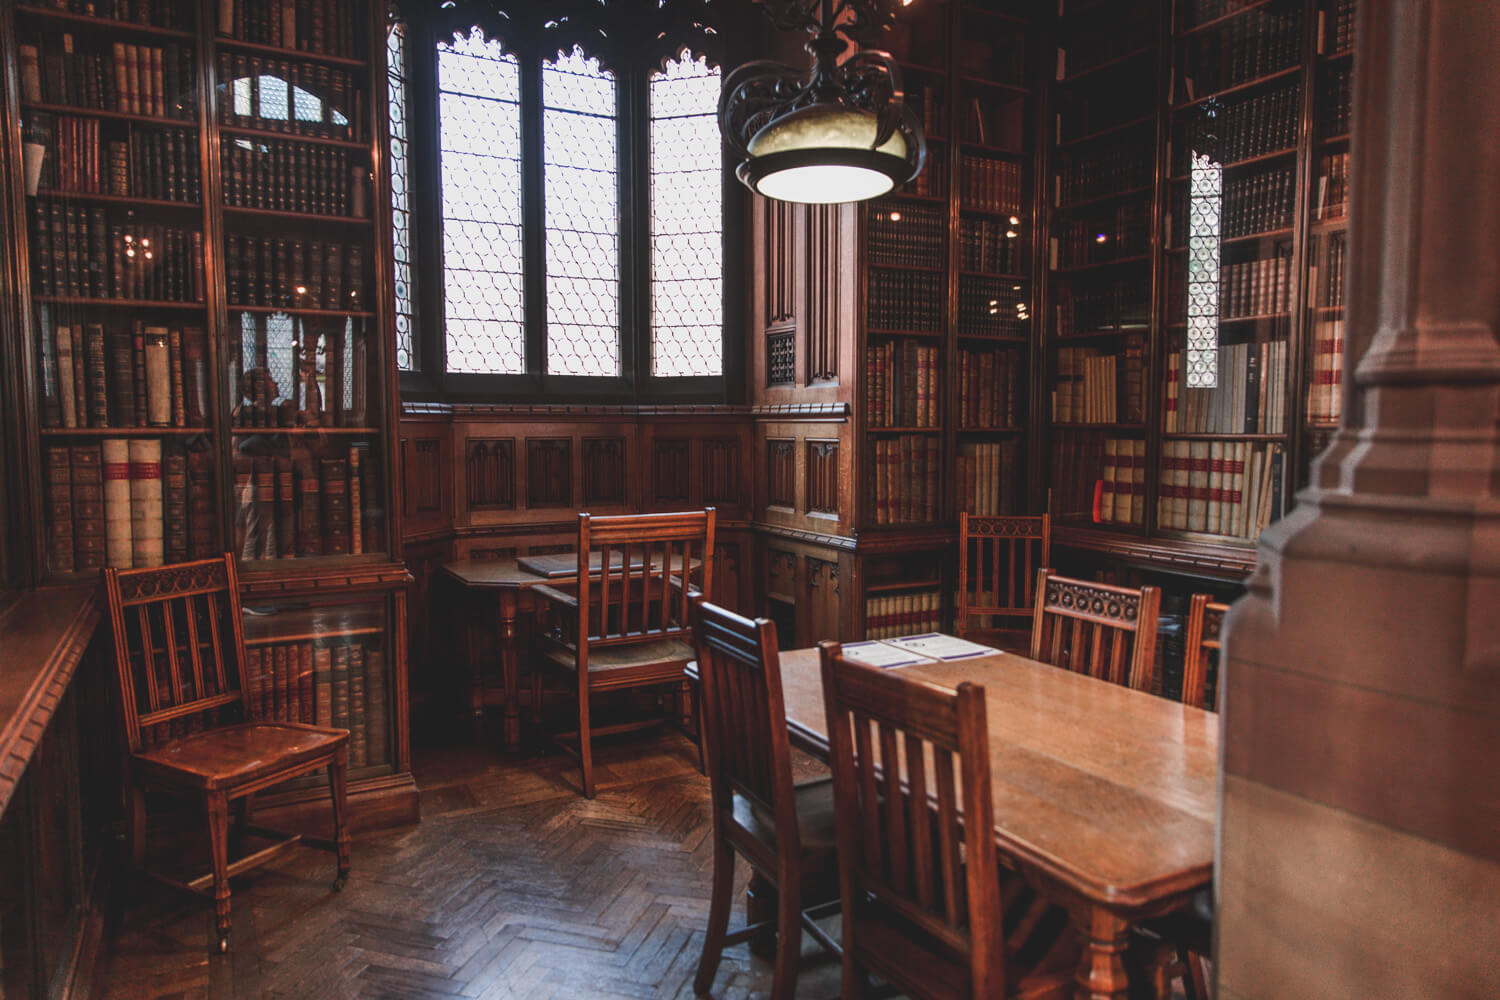 John Rylands Library in Manchester, UK is filled with pretty architecture, chairs, tables, and lights